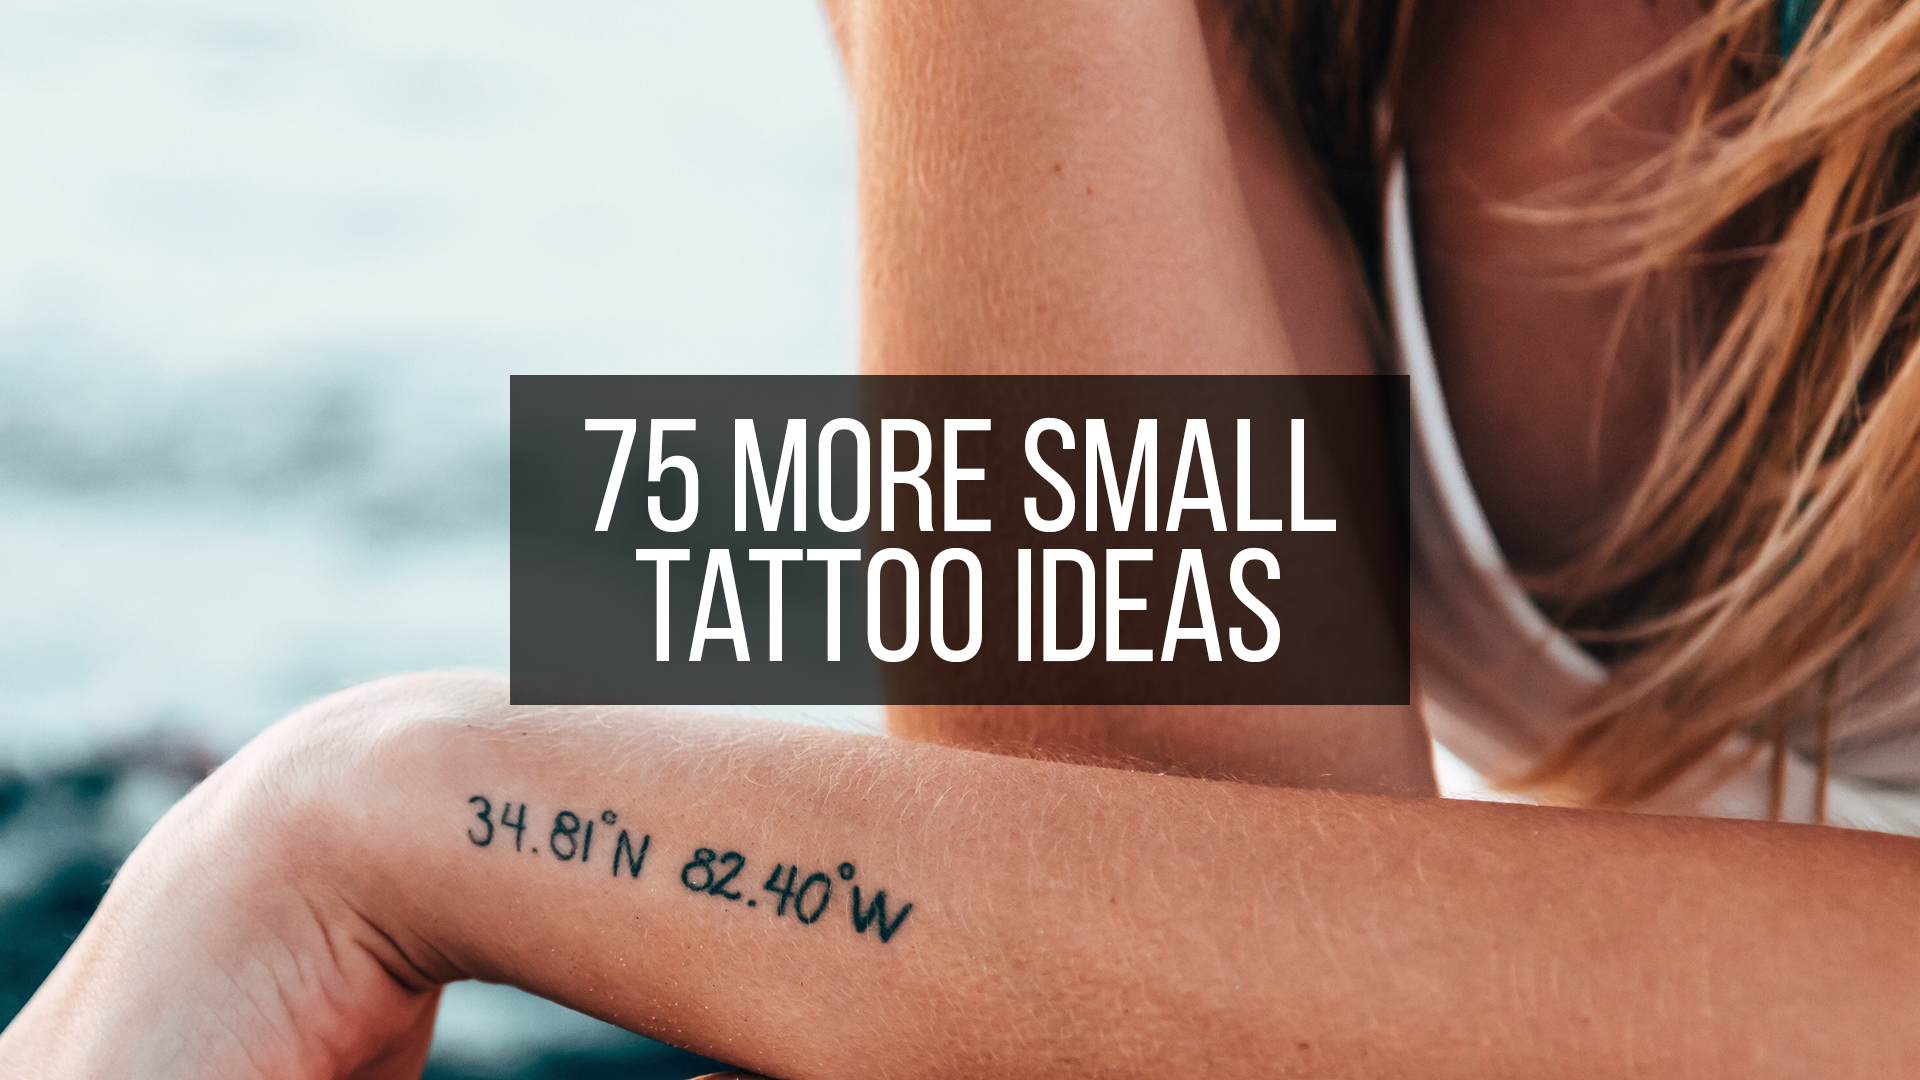 75 More Small Tattoo Ideas From Playground Tattoo Crestfox